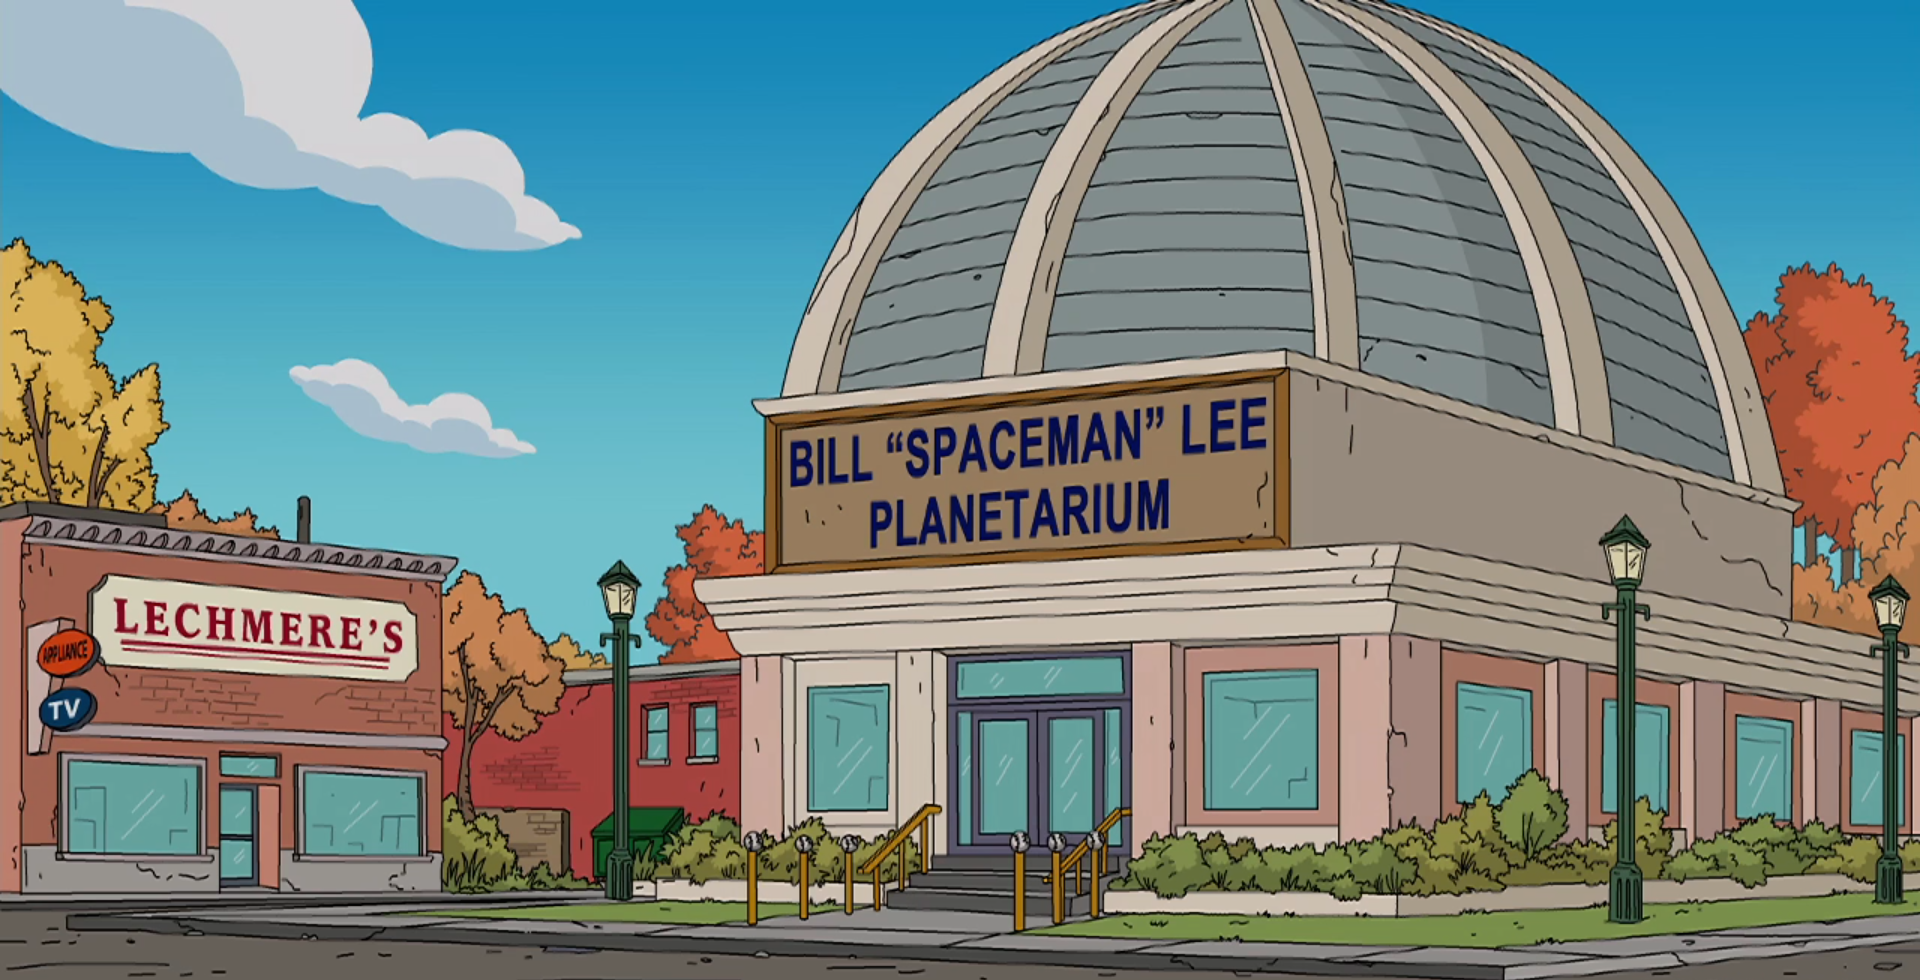 """Lechmere's and the Bill """"Spaceman"""" Lee Planetarium in The Simpsons."""